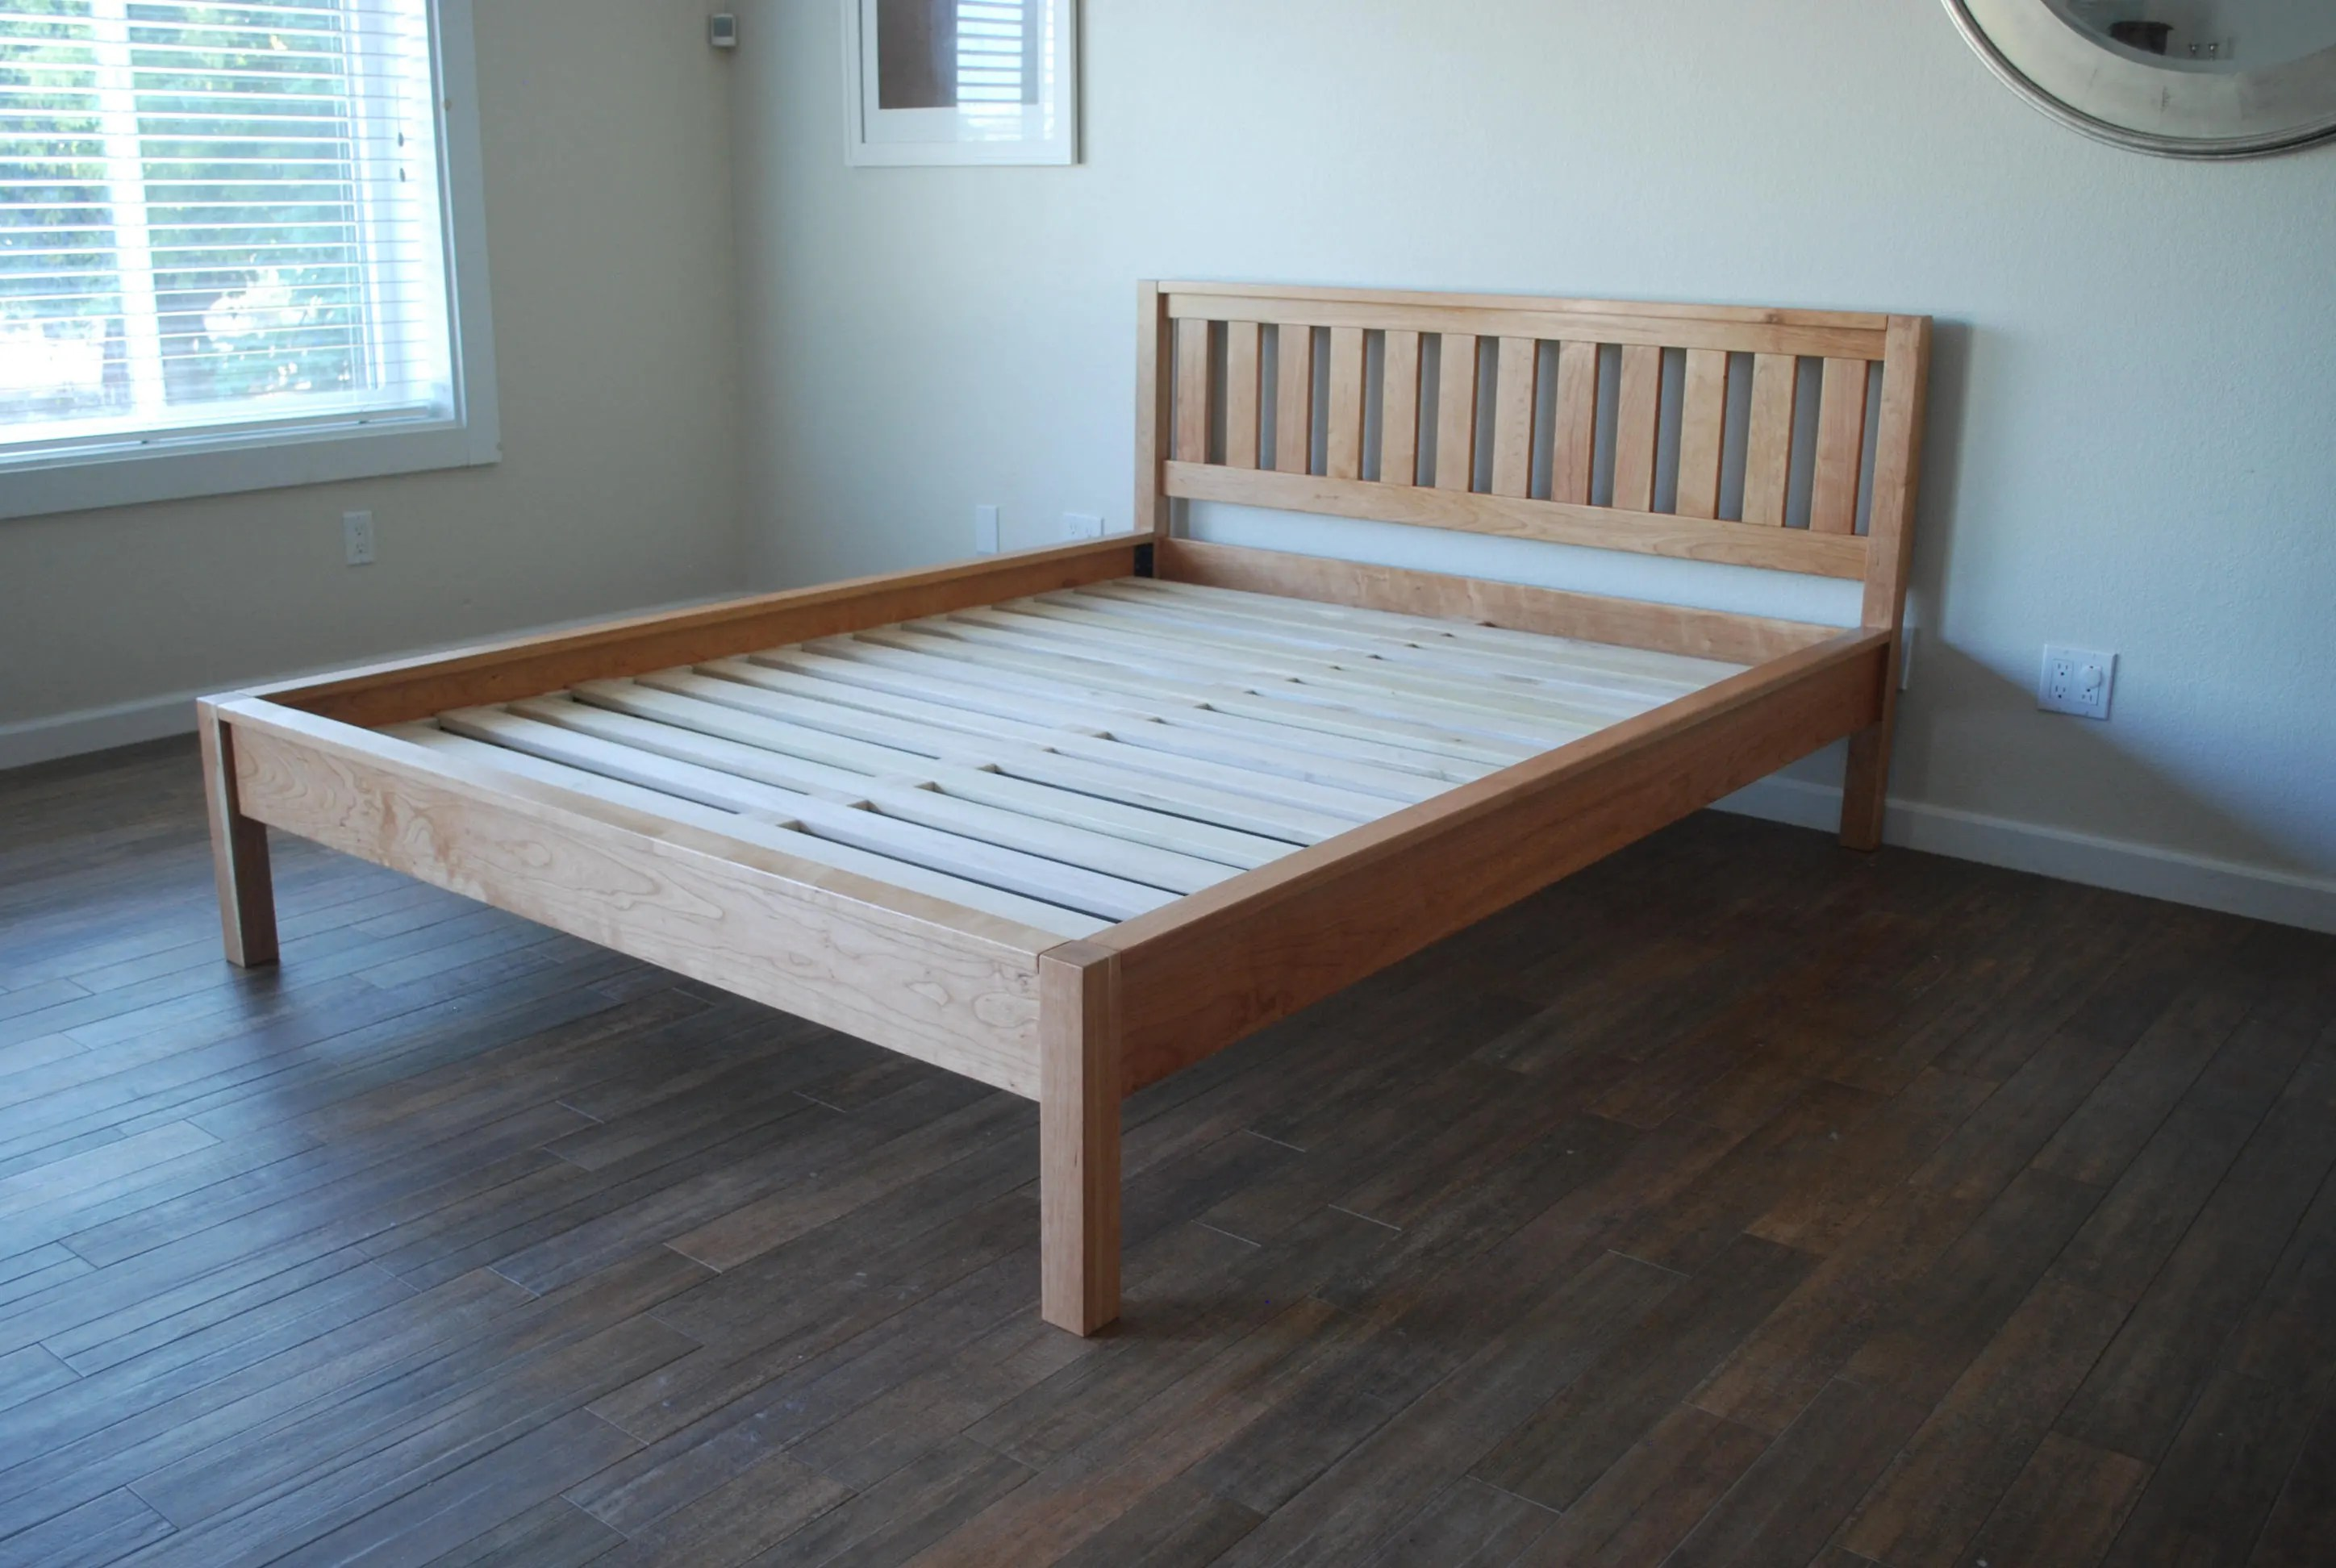 Simple Bed Simple Bed Frame With Slatted Headboard Platform Bed With Headboard Solid Wood Bed Twin Full Queen King California King Cherry Wood